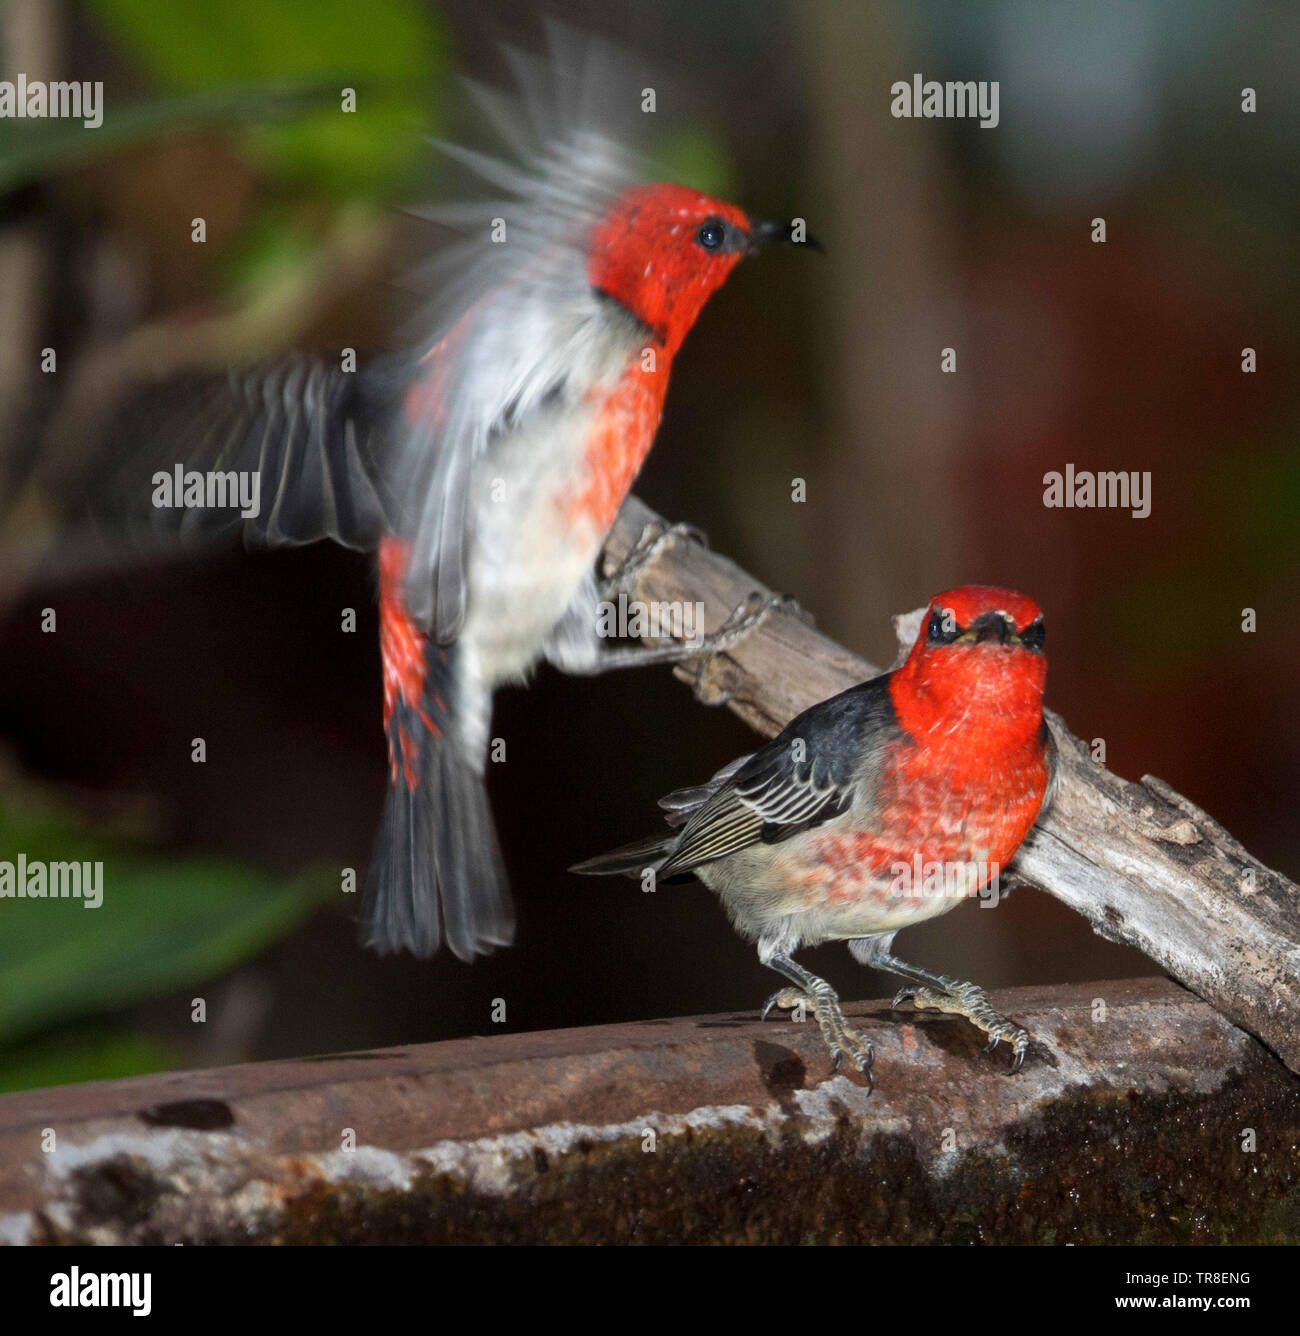 Two stunning red and black male Australian Scarlet Honeyeaters, Myzomela sanguinolenta, one in flight, at garden bird bath - Stock Image